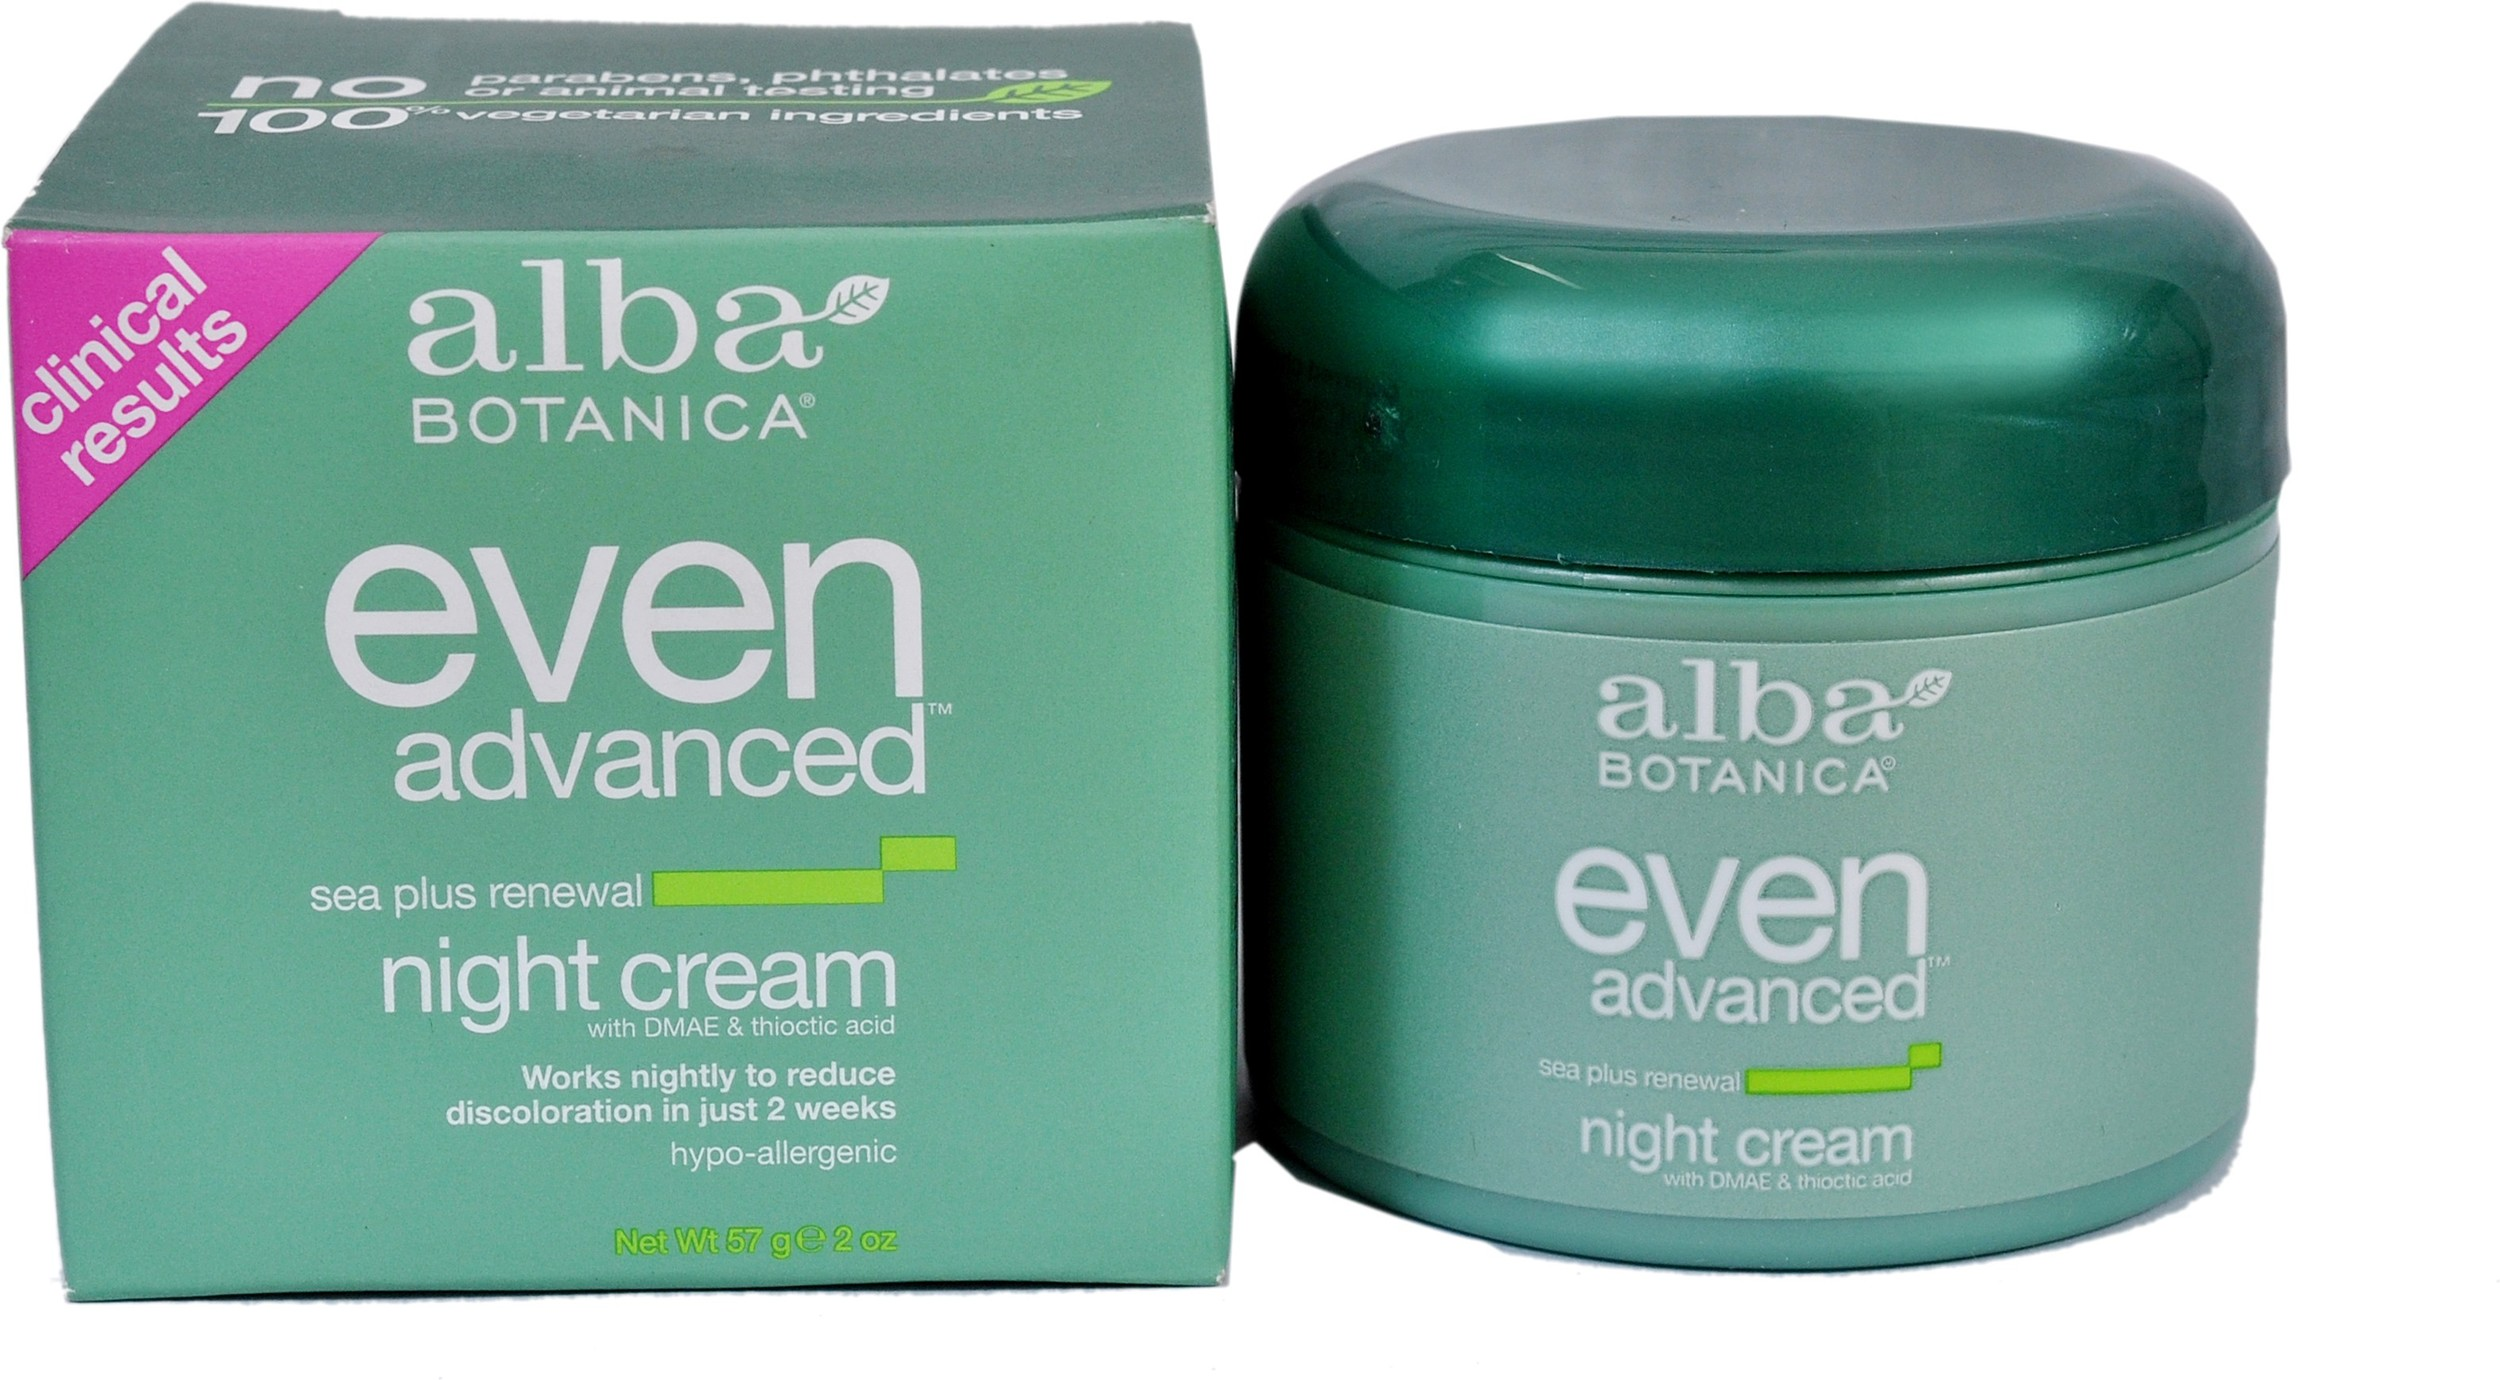 alba-botanica-57-even-advanced-sea-plus-renewal-night-cream-original-imae5qmhmp64zshe.jpg